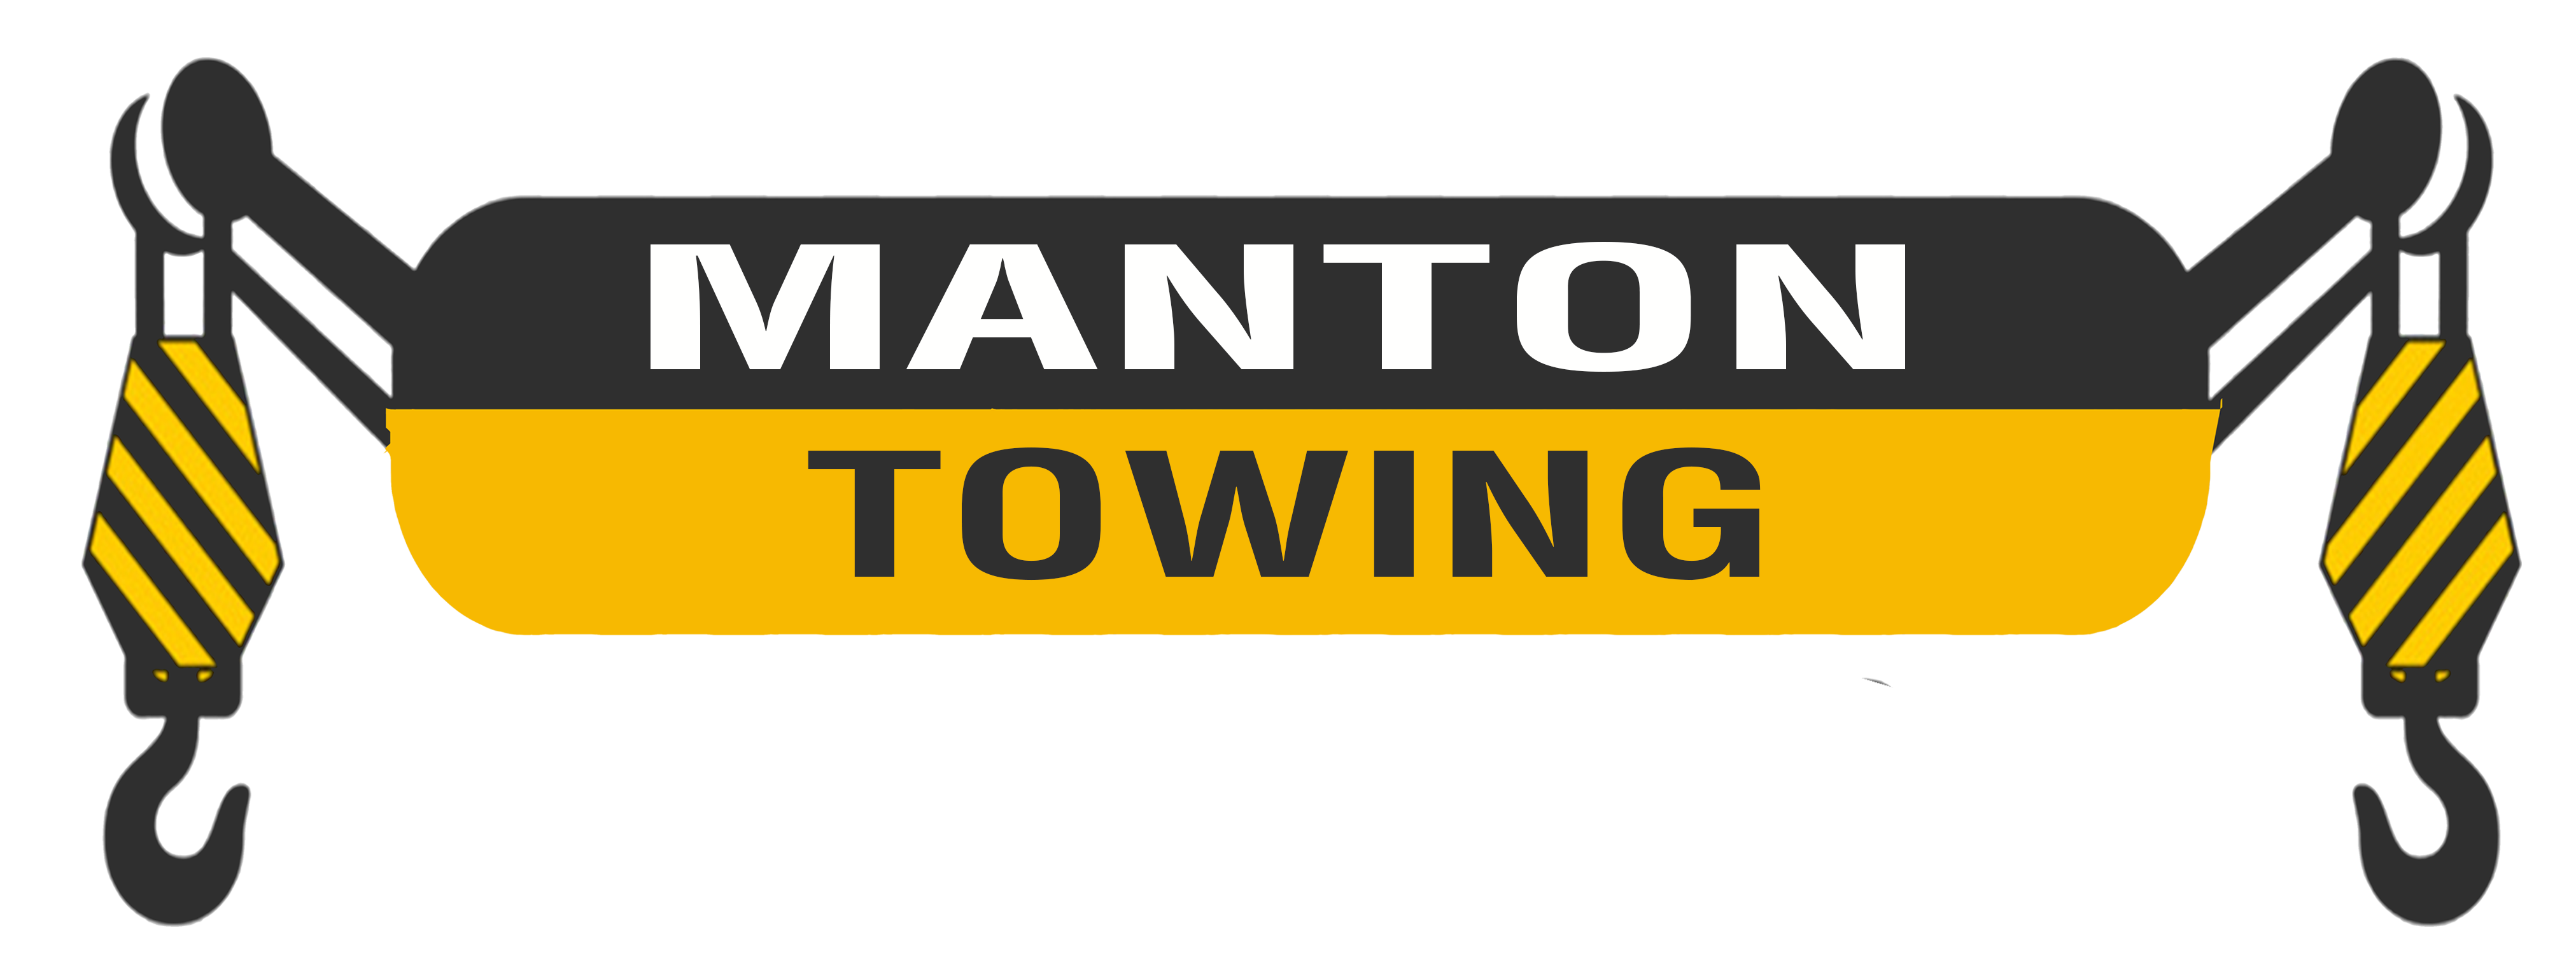 Manton Towing